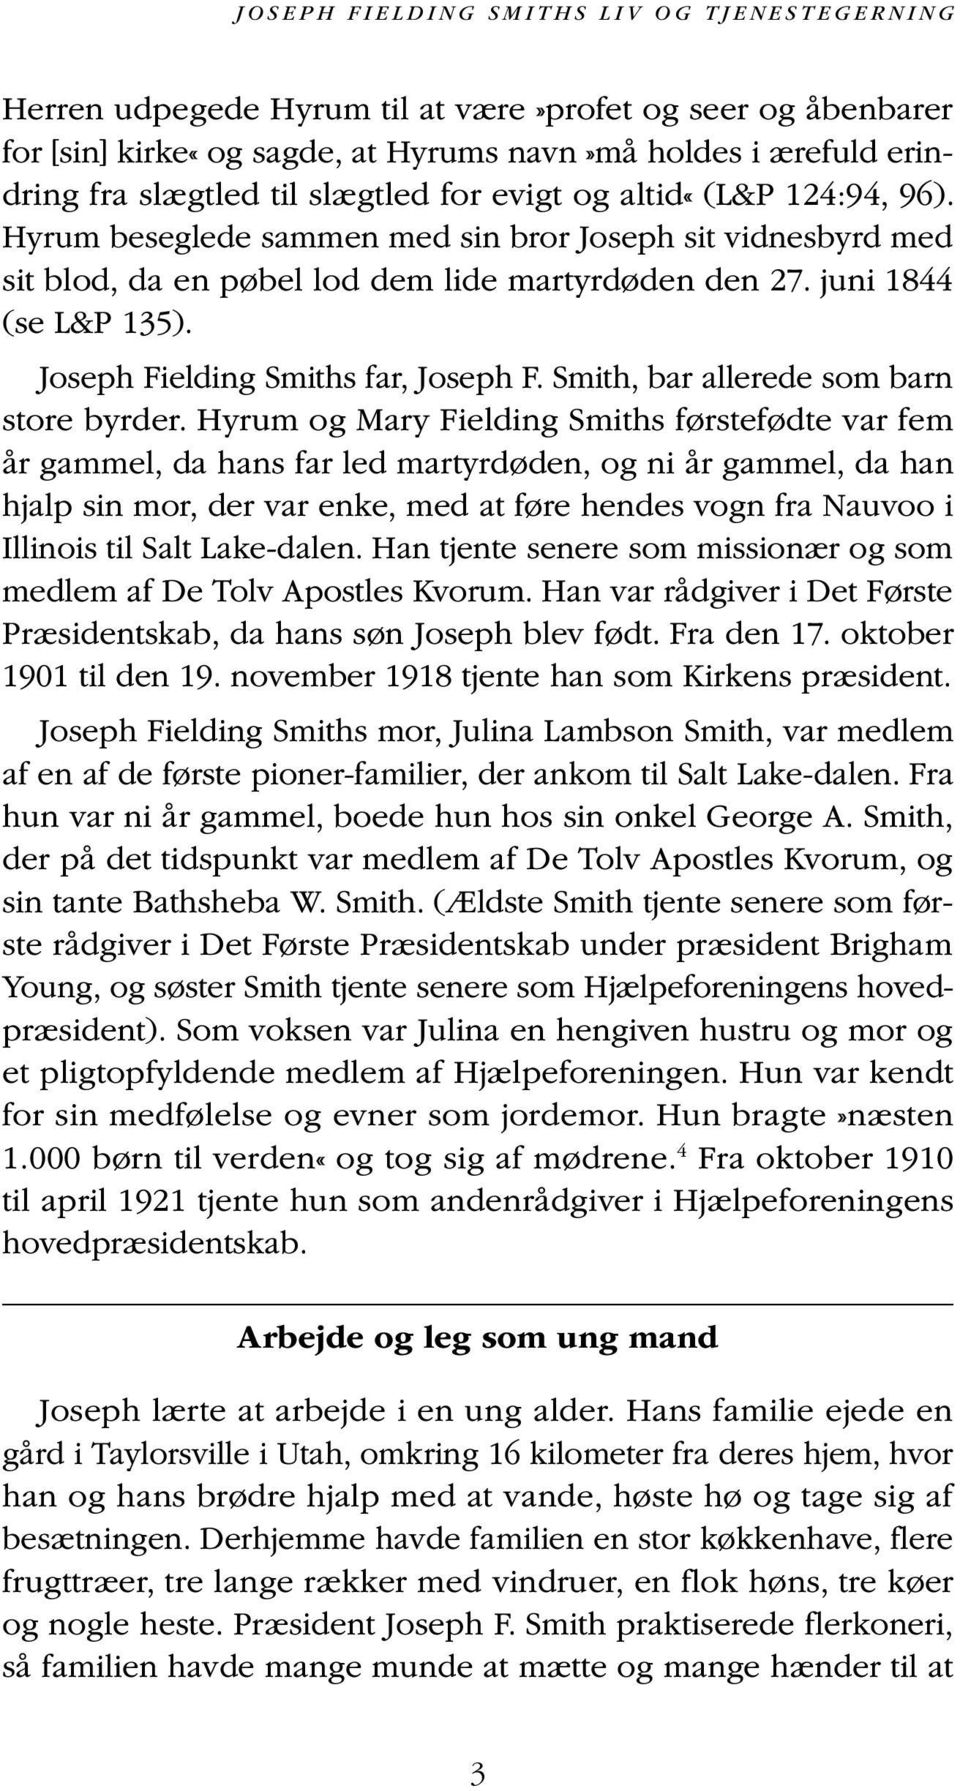 Joseph Fielding Smiths far, Joseph F. Smith, bar allerede som barn store byrder.